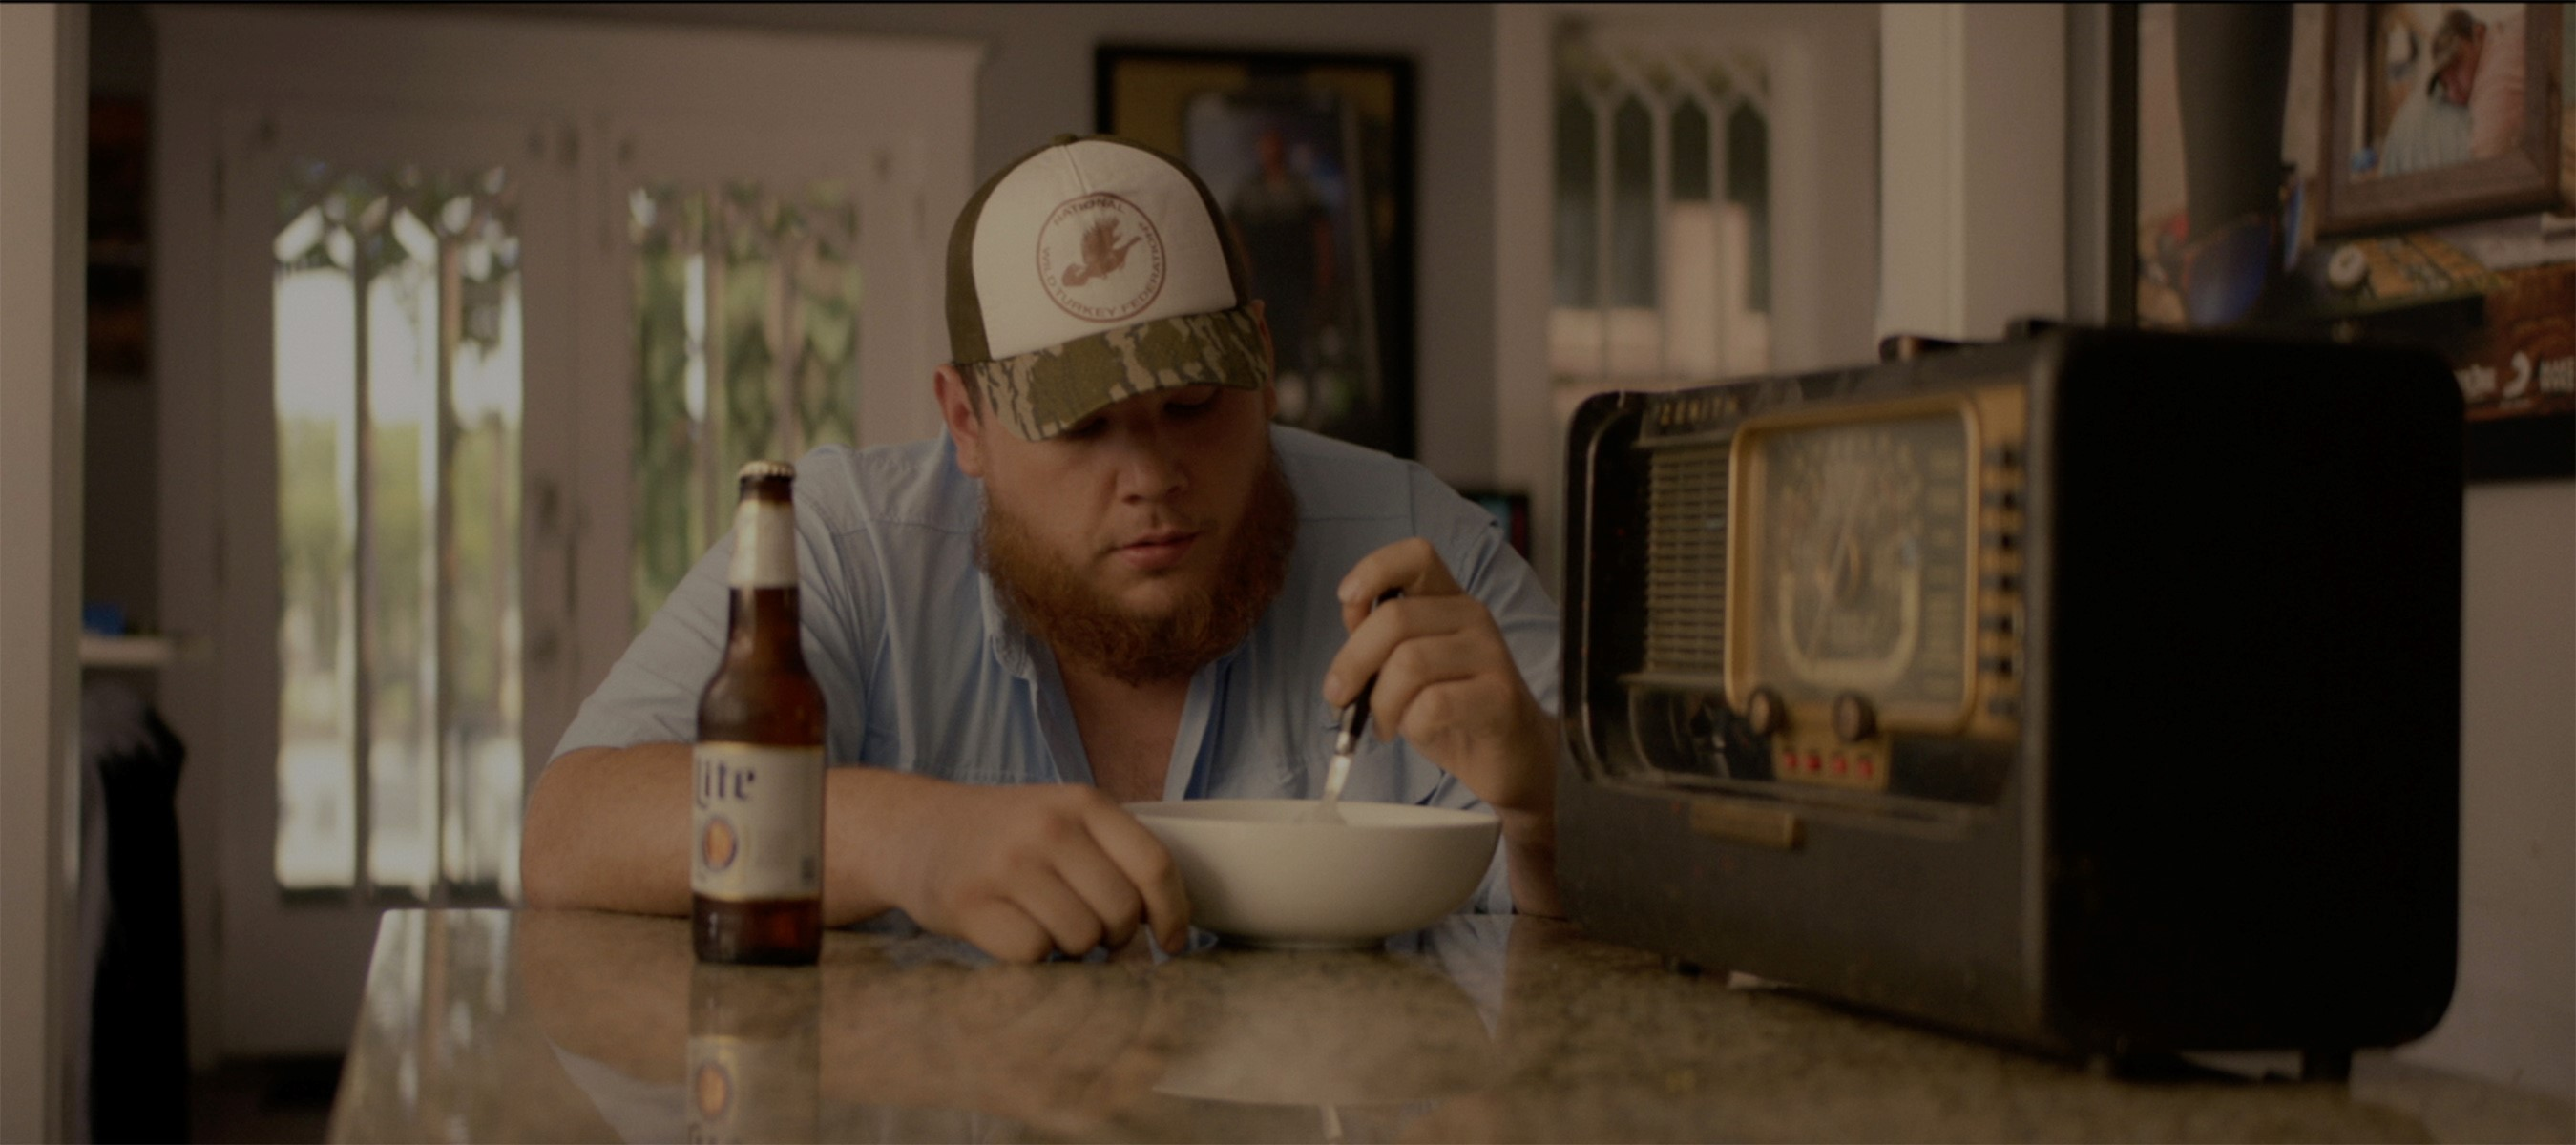 Luke Combs Celebrates His Journey with 'She's Got The Best Of Me' Video